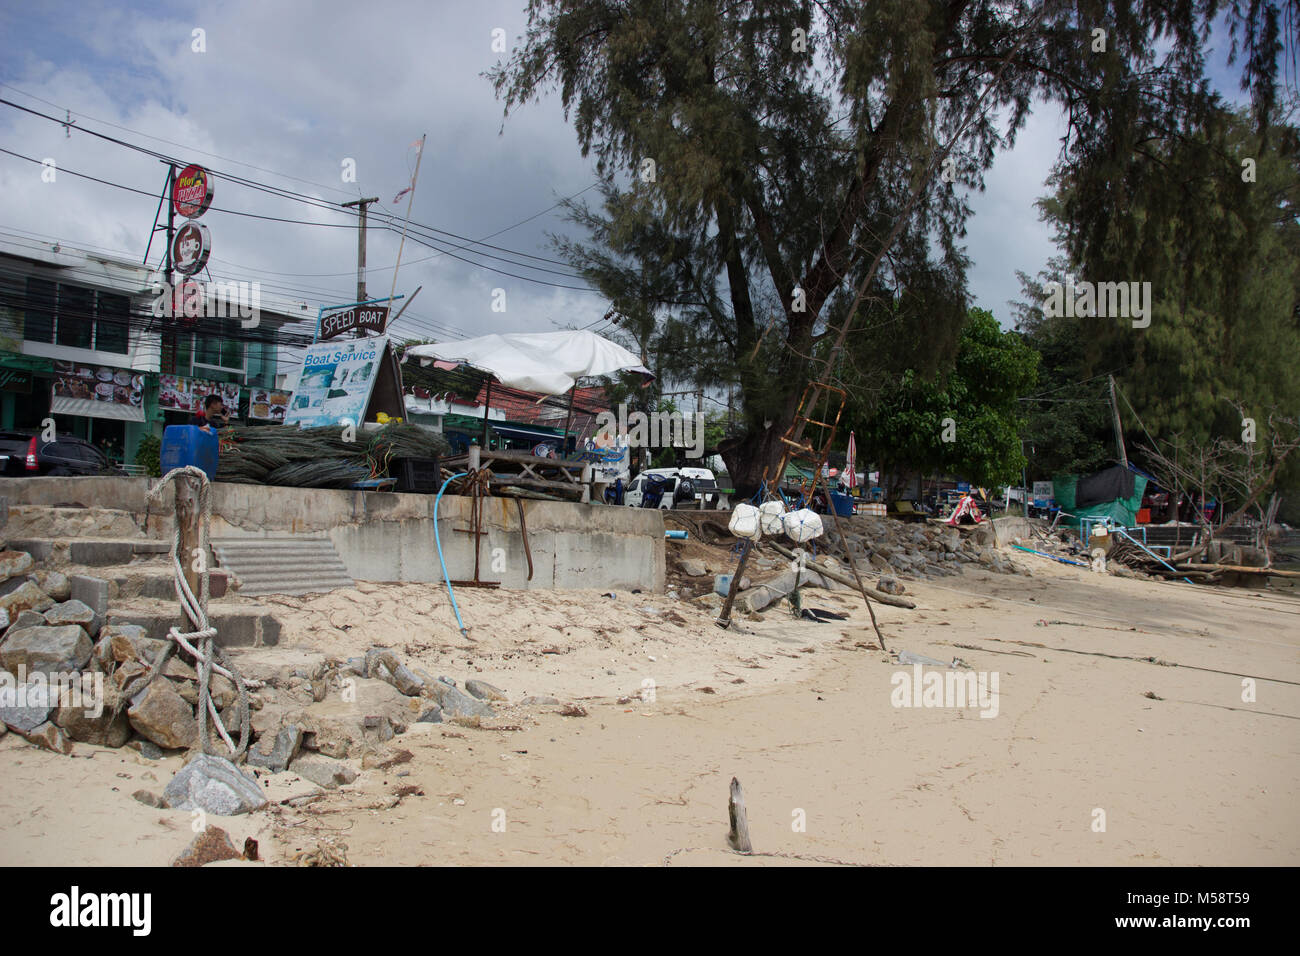 Polluted beaches suffering the effects of mass tourism on Phuket island - Stock Image